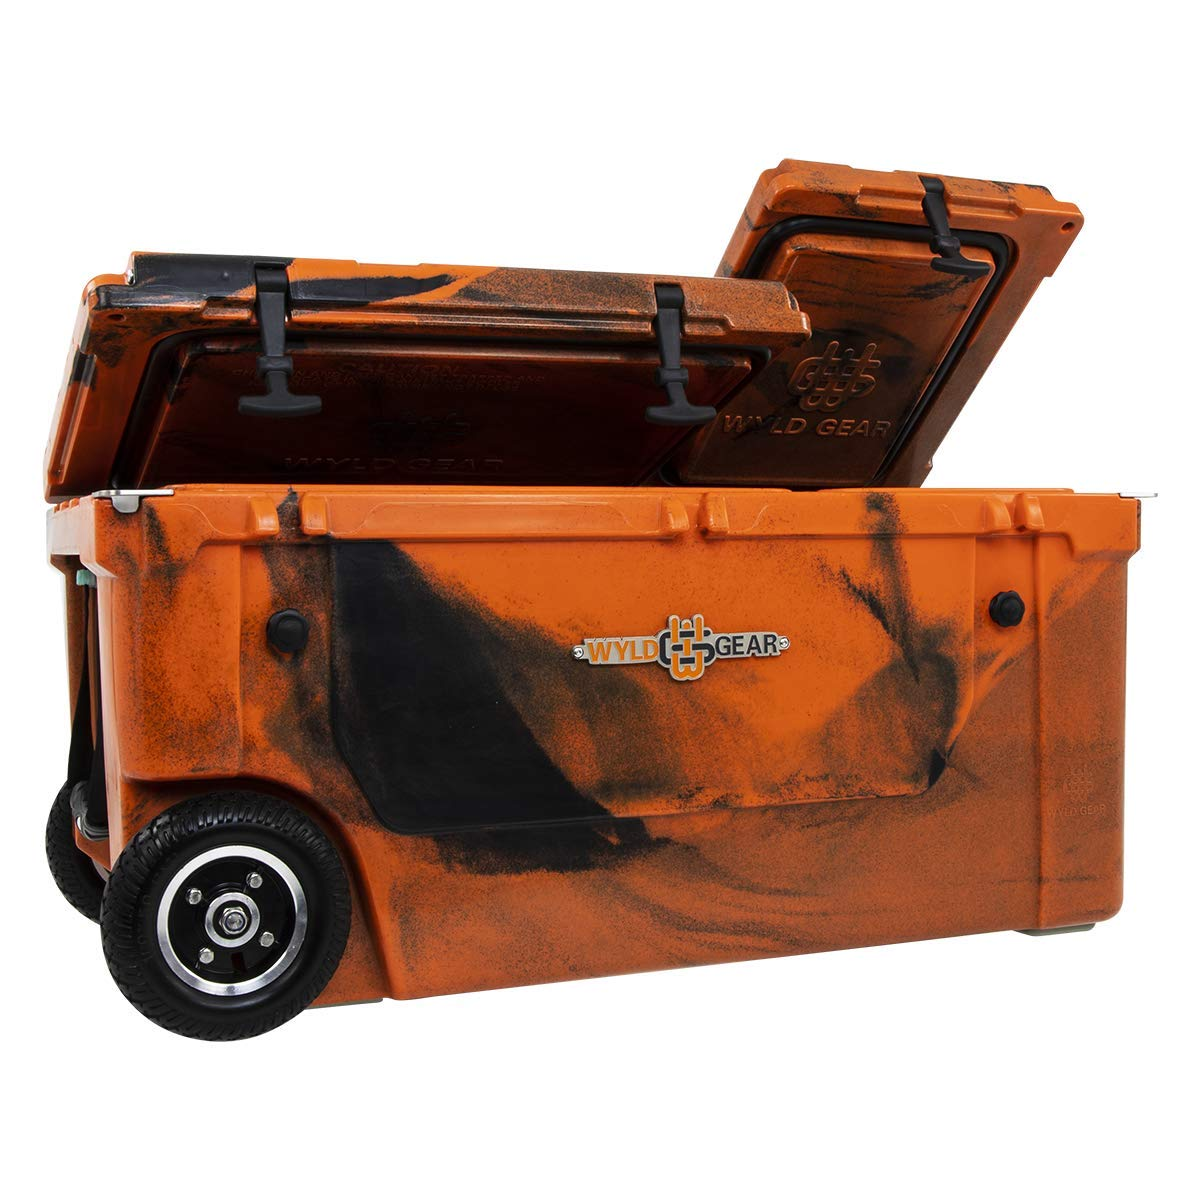 WYLD 75 Quart Dual-Compartment Insulated Orange Black Cooler w Wheels Tap Kit Aerator Port Kit Rod Holder Available for Camping Fishing Boating Tailgating